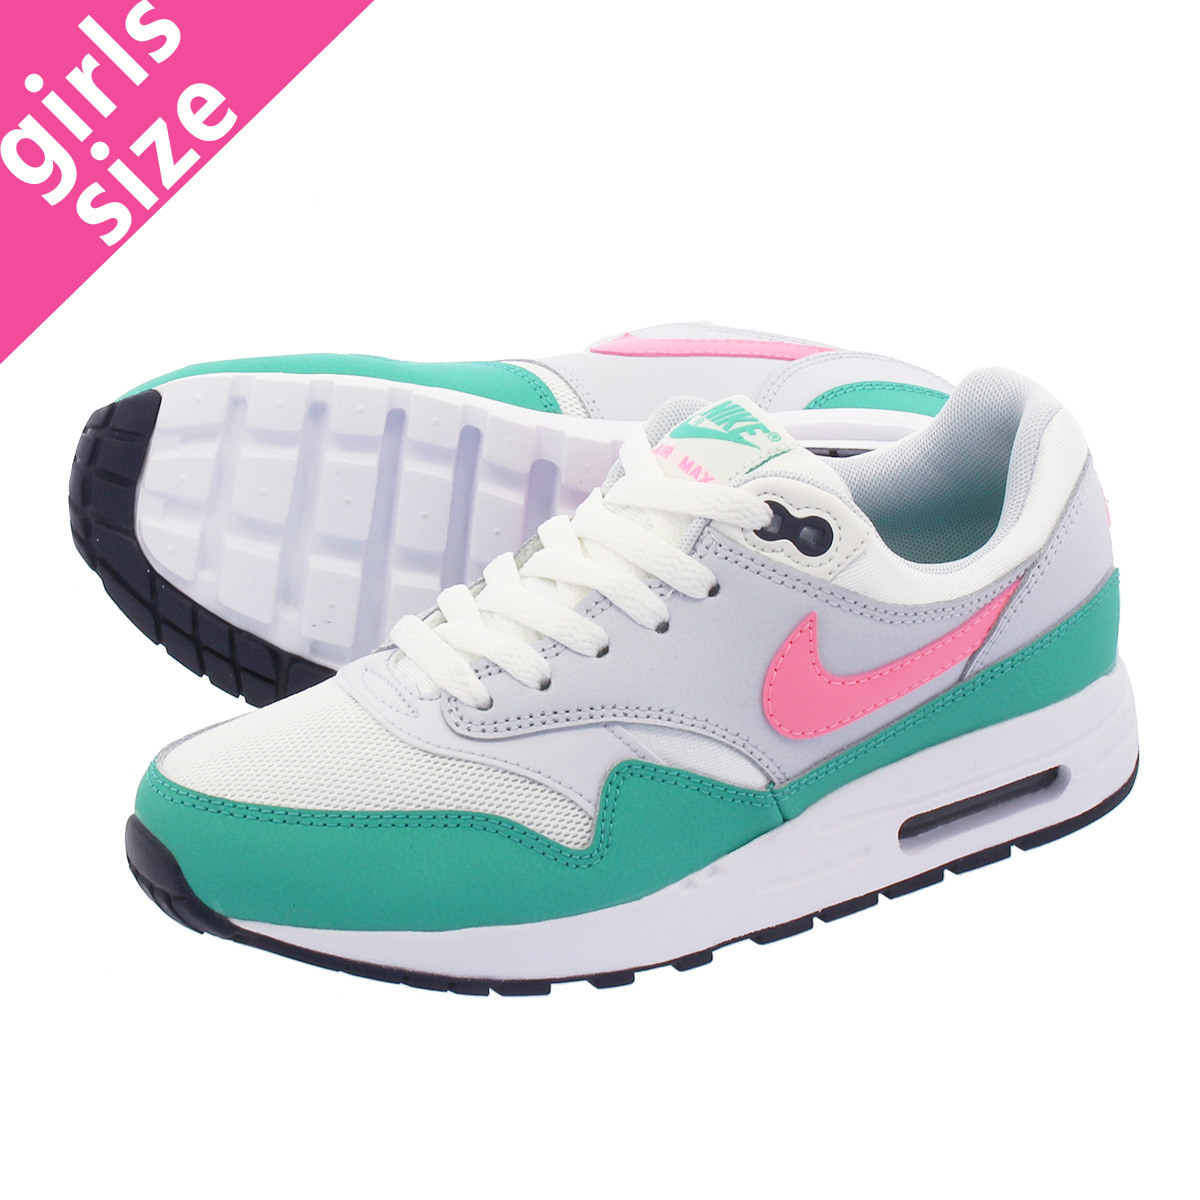 best loved 807a1 6c4c0 NIKE AIR MAX 1 GS Kie Ney AMAX 1 GS SUMMIT WHITE SUNSET PULSE KINETIC GREEN  807,602-105